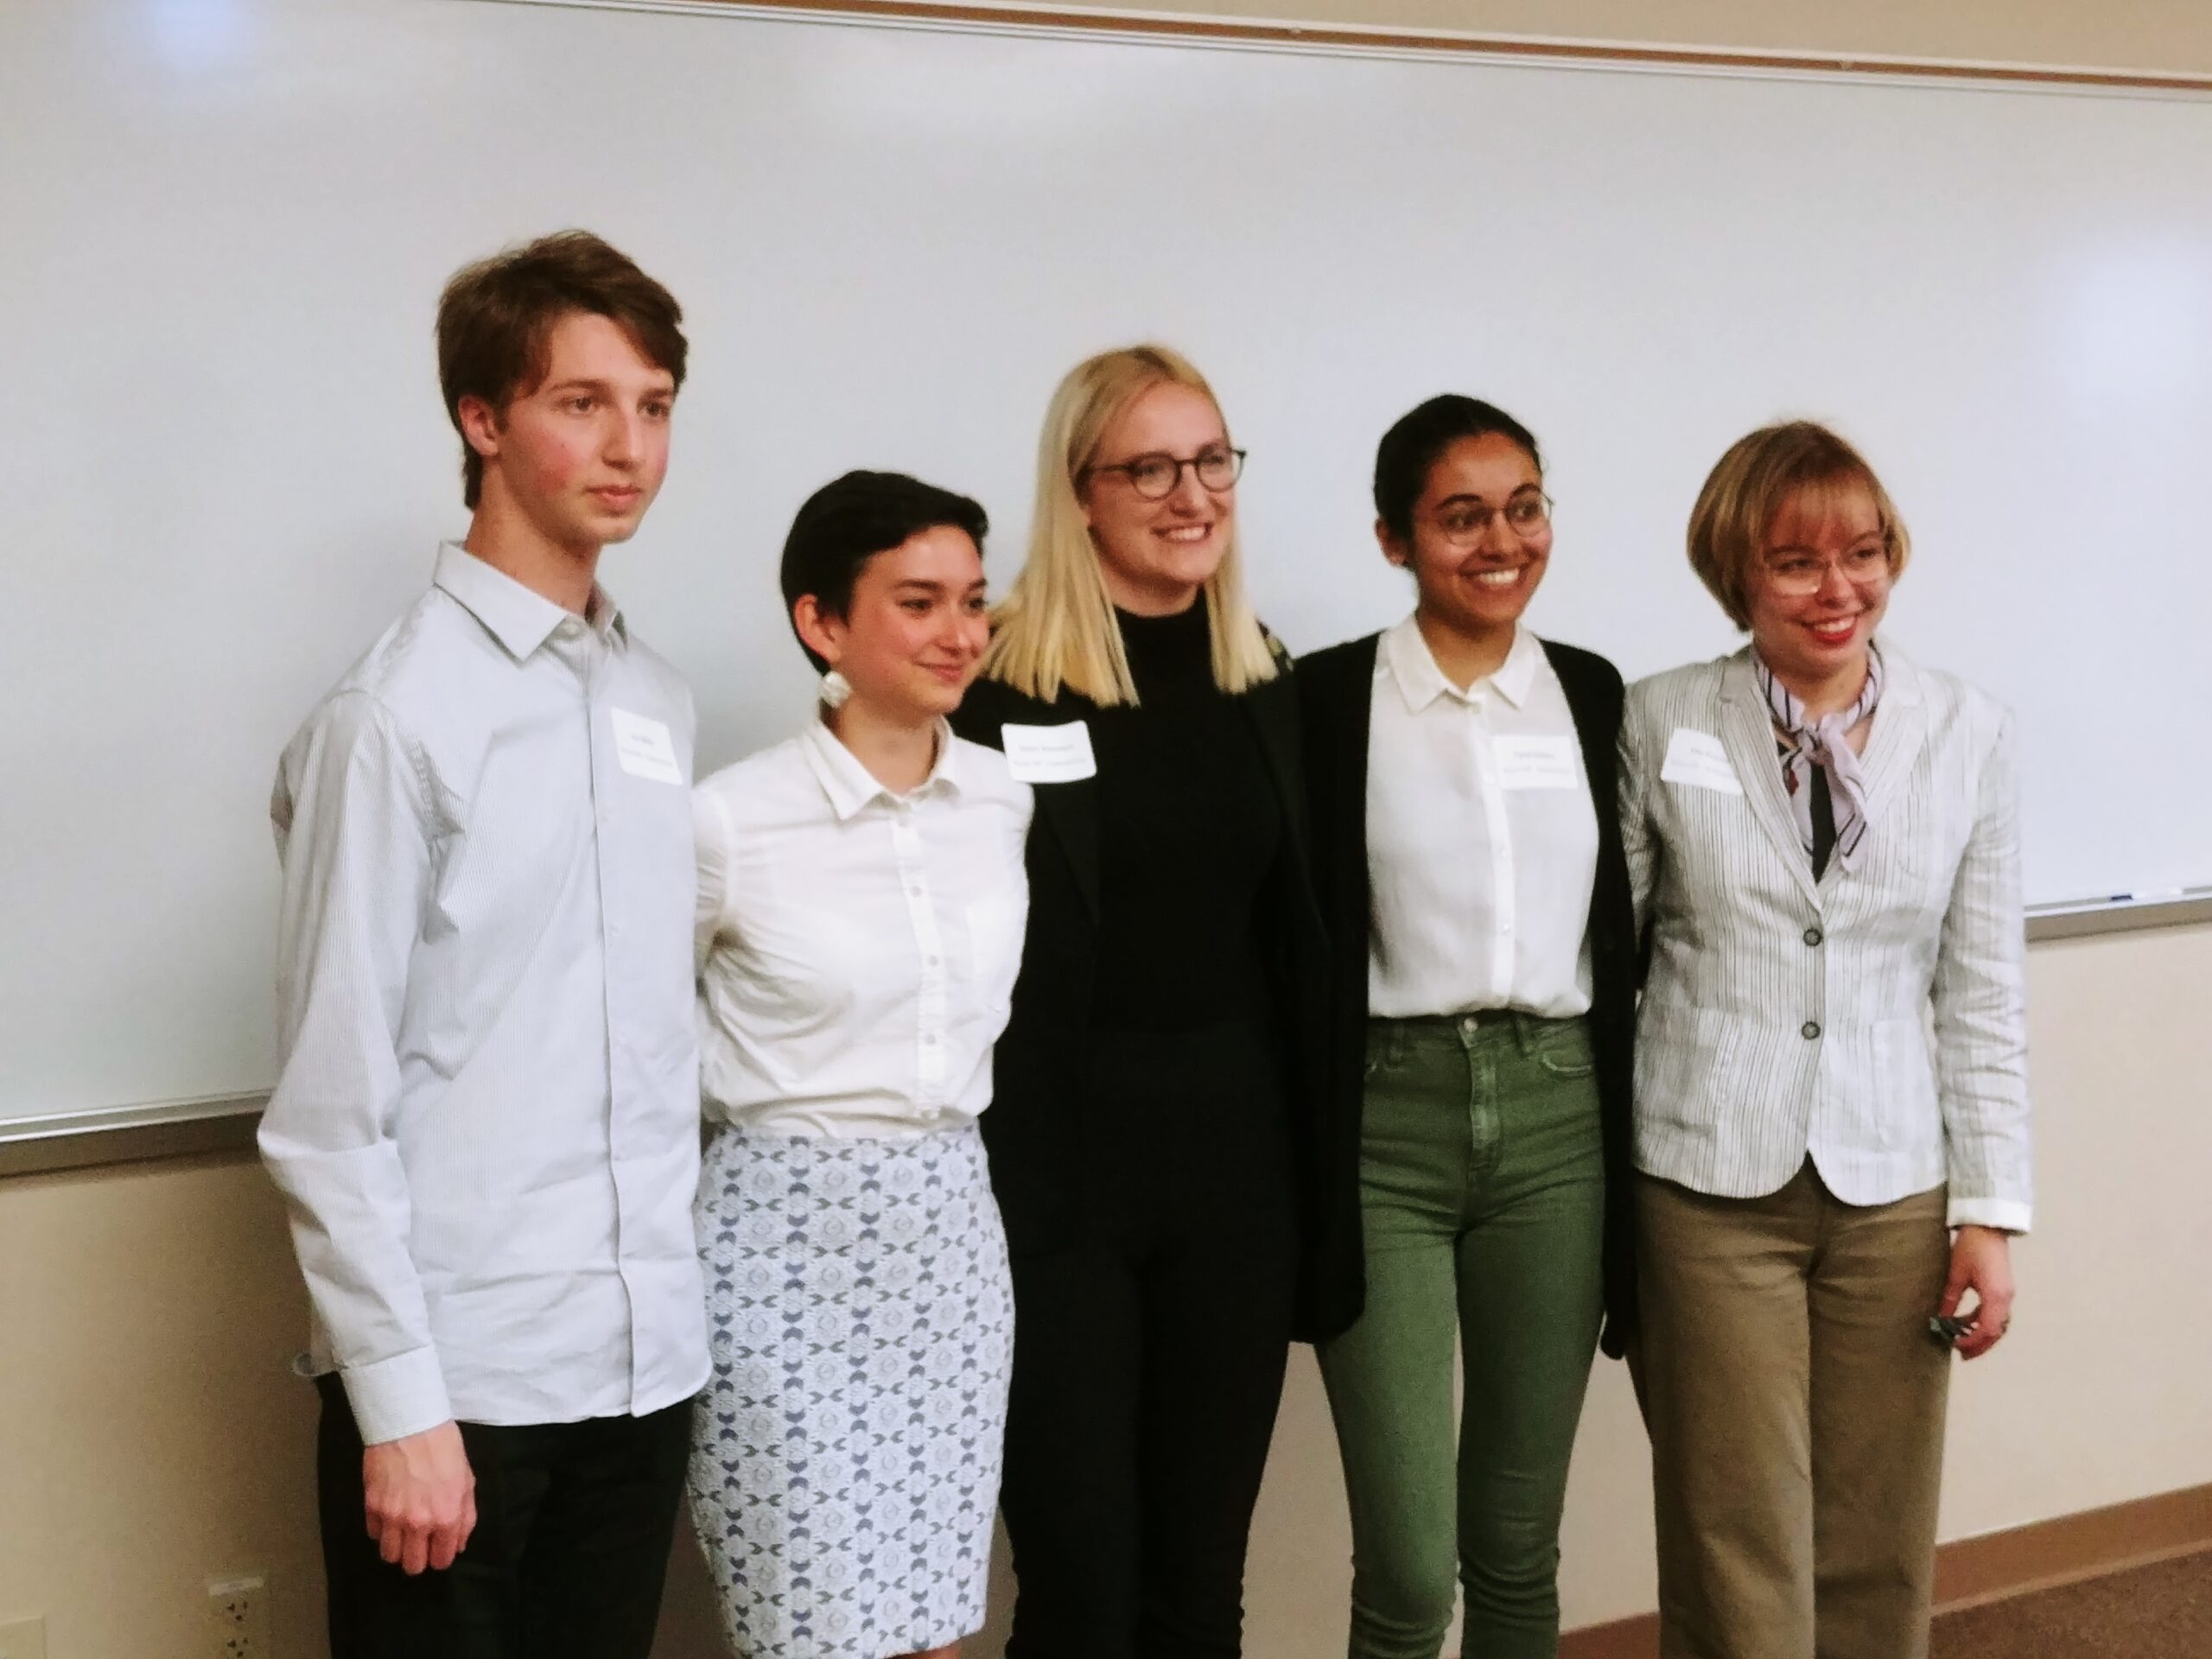 Ian Miller in Undergraduate Research Day, Spring 2019, group photo of Anthropology students who presented research.